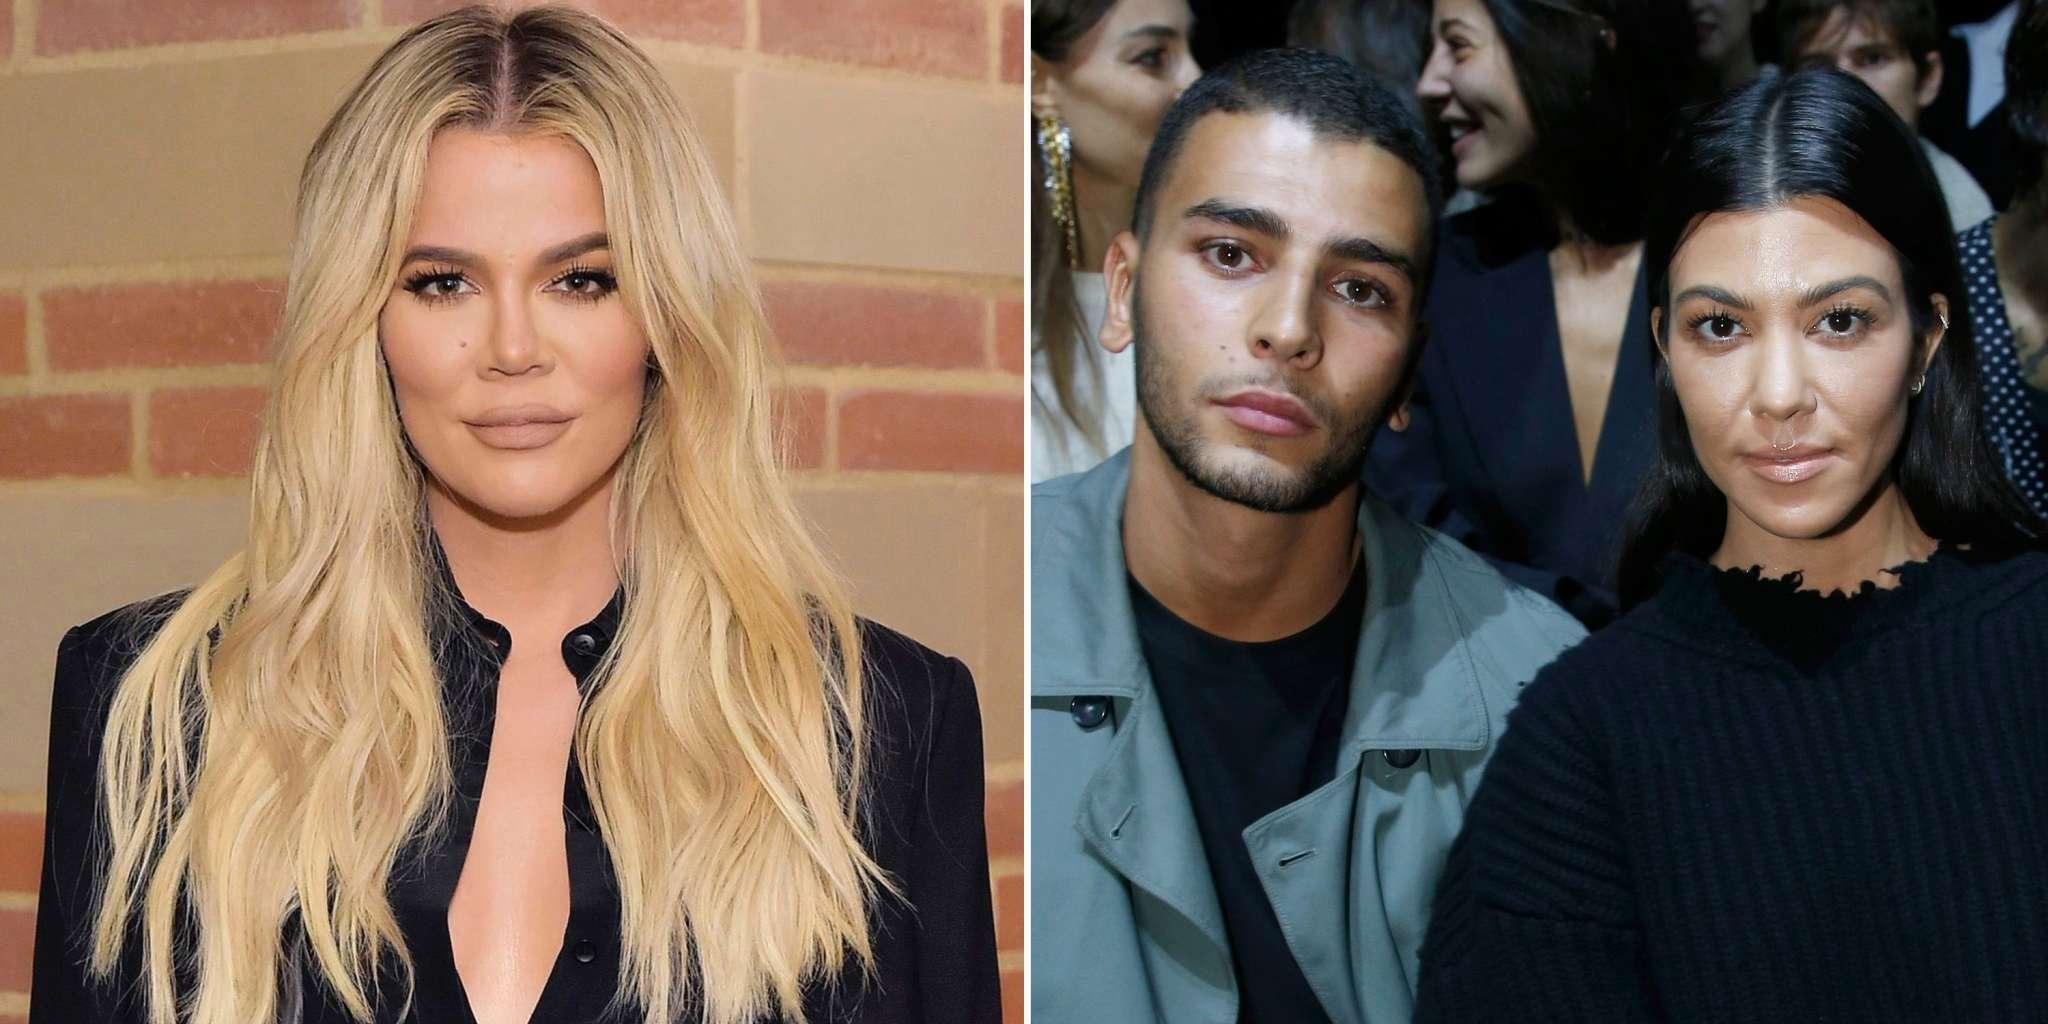 KUWTK: Khloe Kardashian Drags Sister Kourtney's Ex-Boyfriend Younes Bendjima